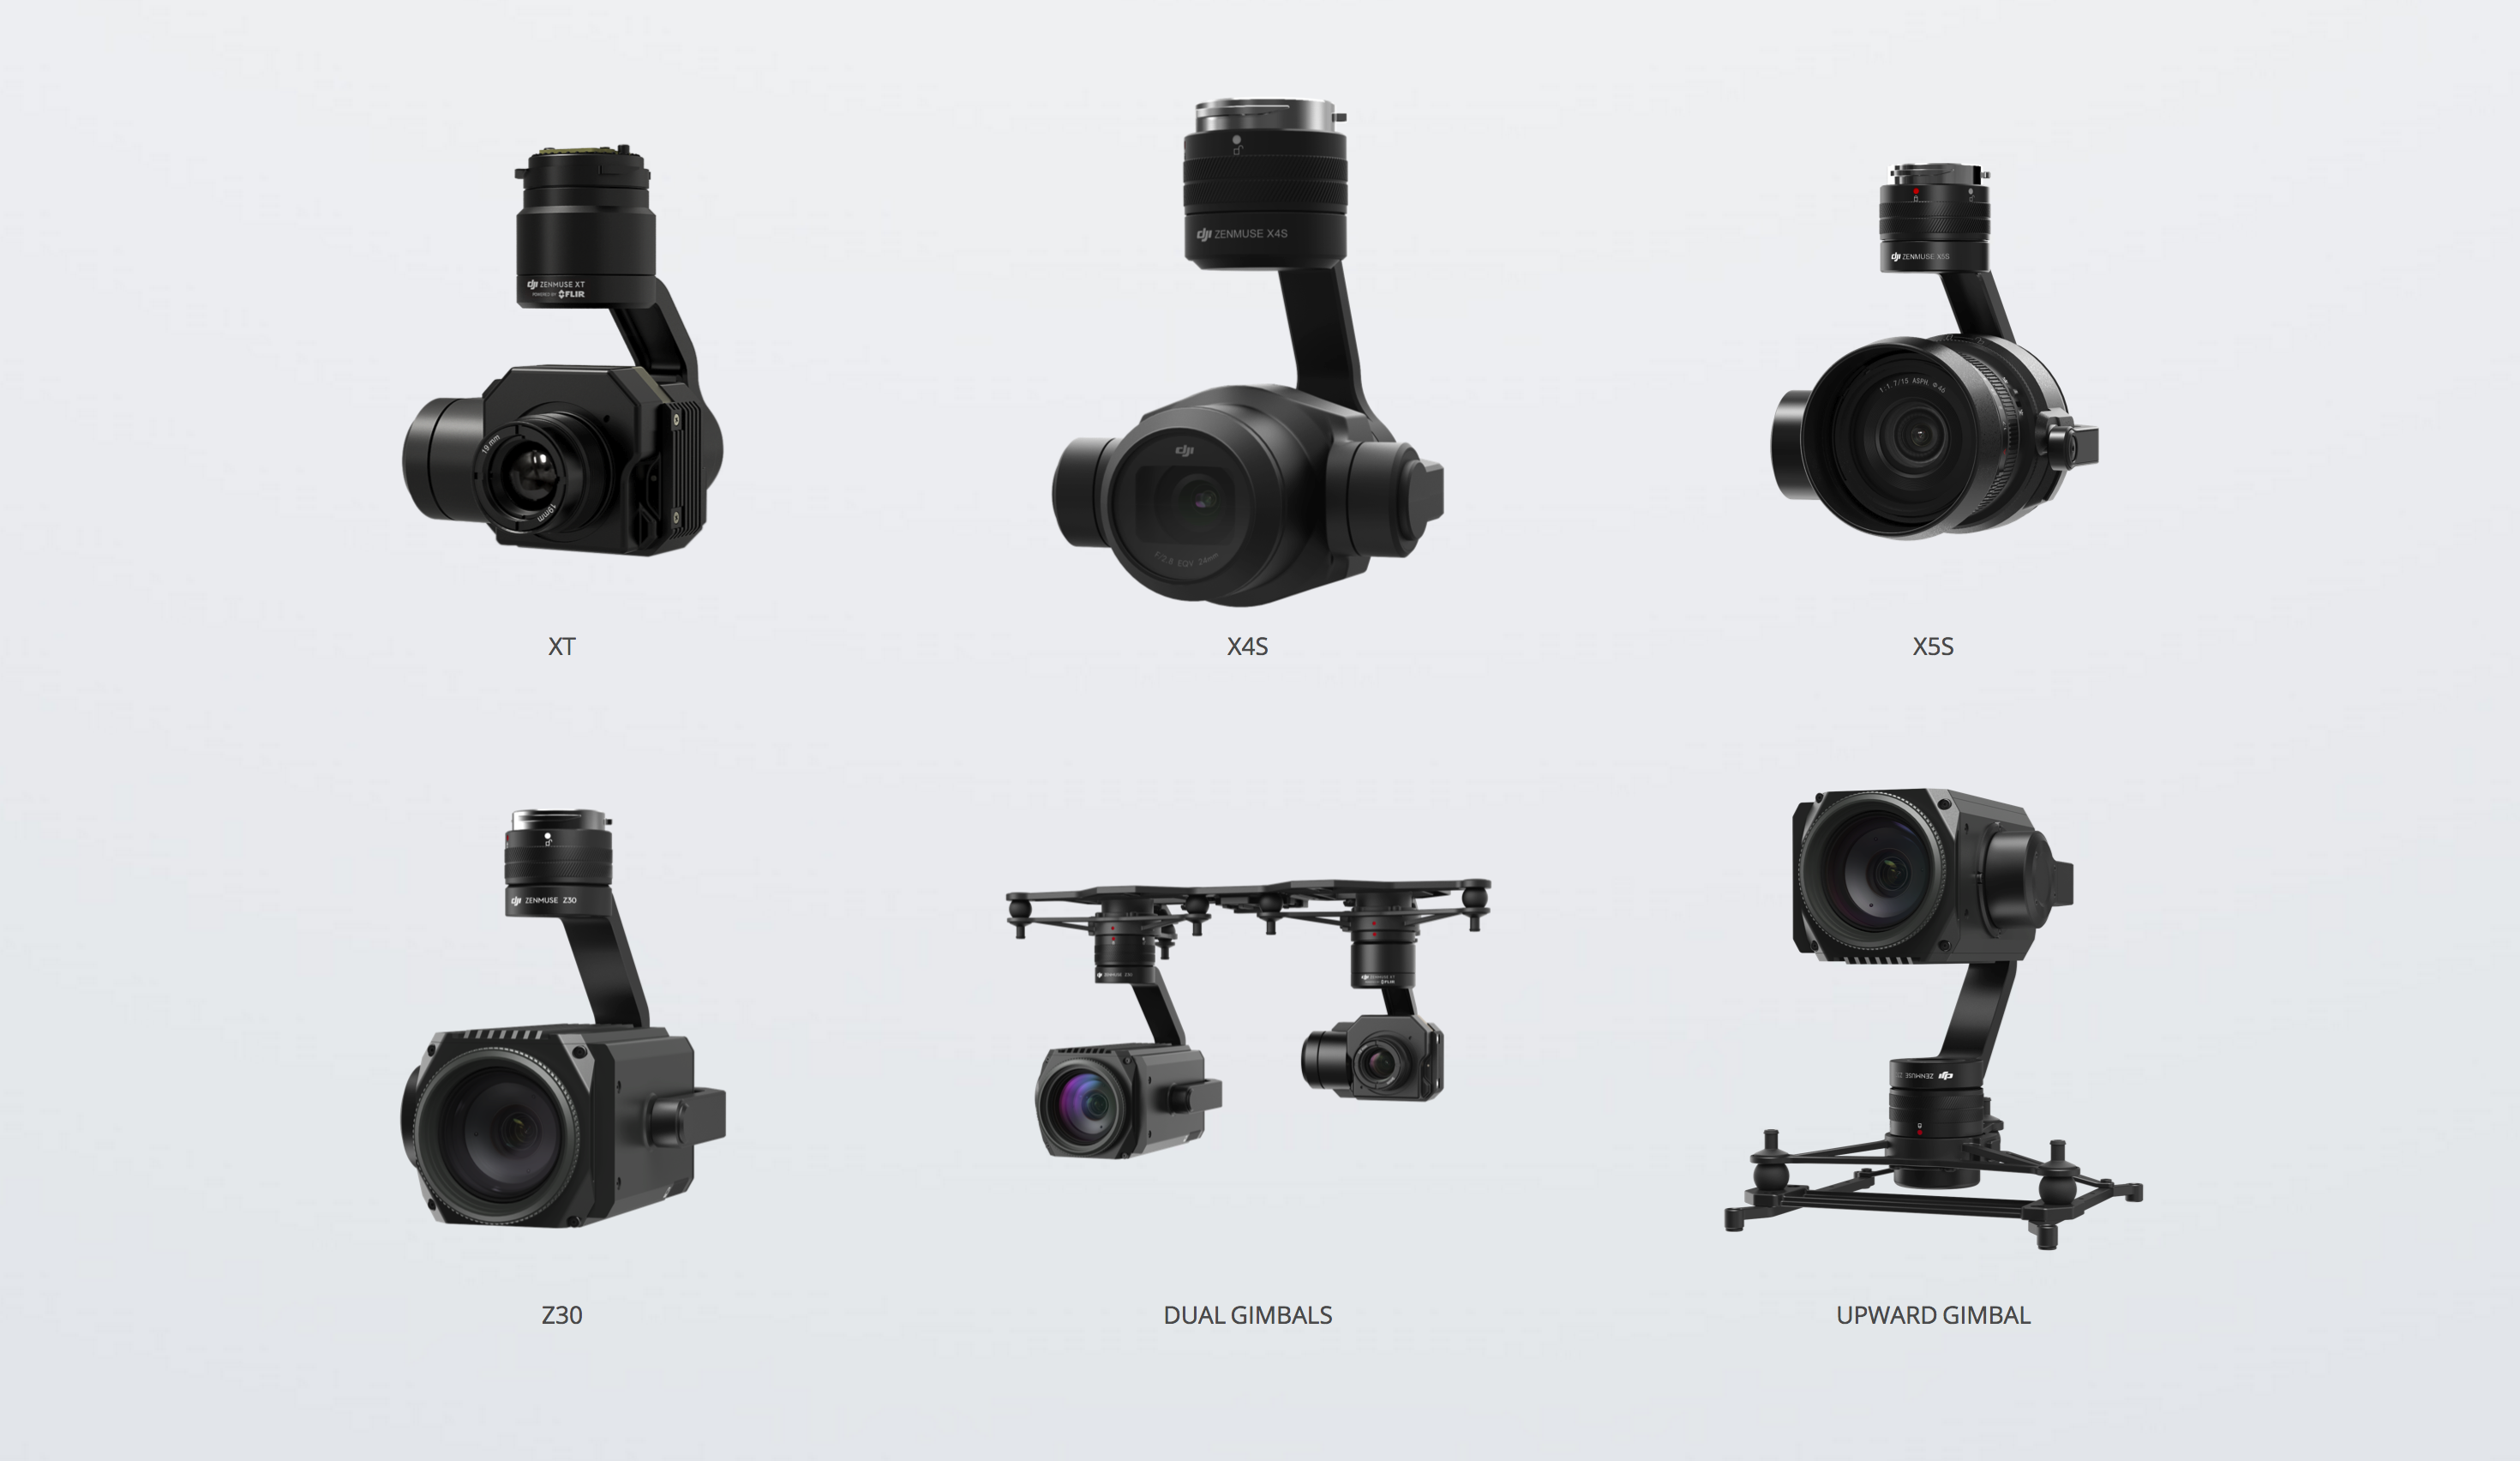 Industrial Drone Inspections Dr Dji Zenmuse X4s Finally The X5s Is A Micro Four Thirds 208 Megapixel Camera With 128 Stops Of Dynamic Range Eight Different Lens Options Users Can Select